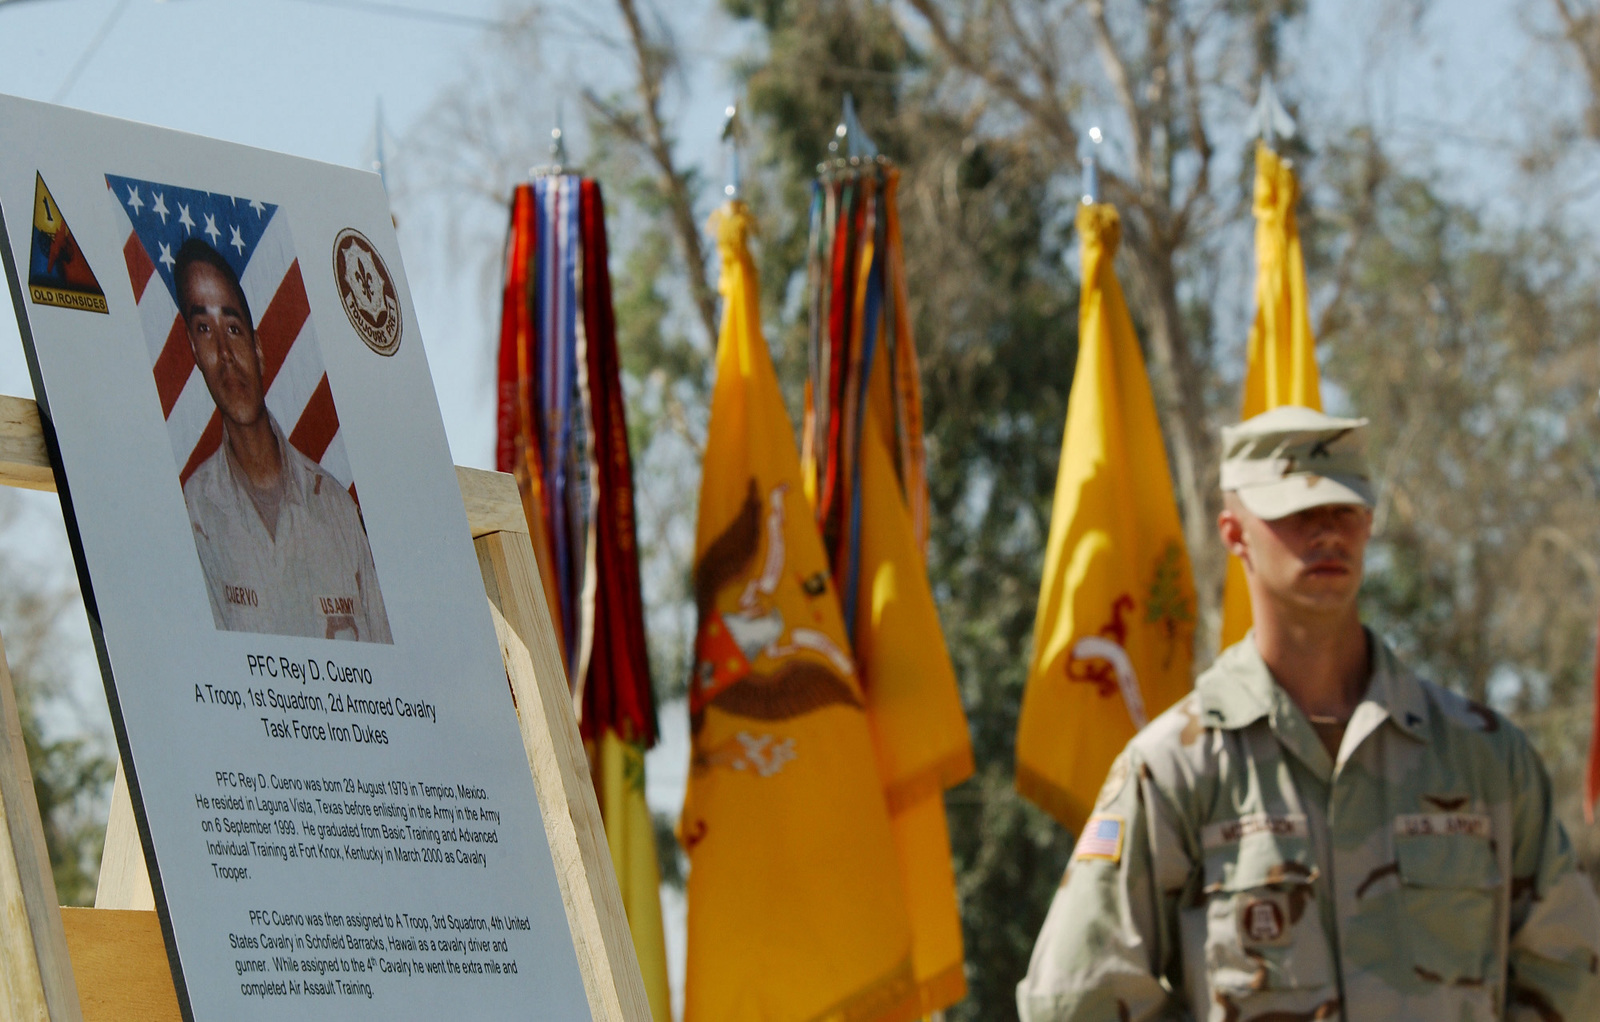 A Member of the US Army (USA), 2nd Armored Calvary Regiment stands in front of the colors during a Forward Operating Base (FOB) Dedication Ceremony for Private First Class (PFC) Rey D. Cuervo, near Baghdad, Iraq (IRQ). He was killed while deployed with the 2nd Armored Calvary in support of Operation IRAQI FREEDOM